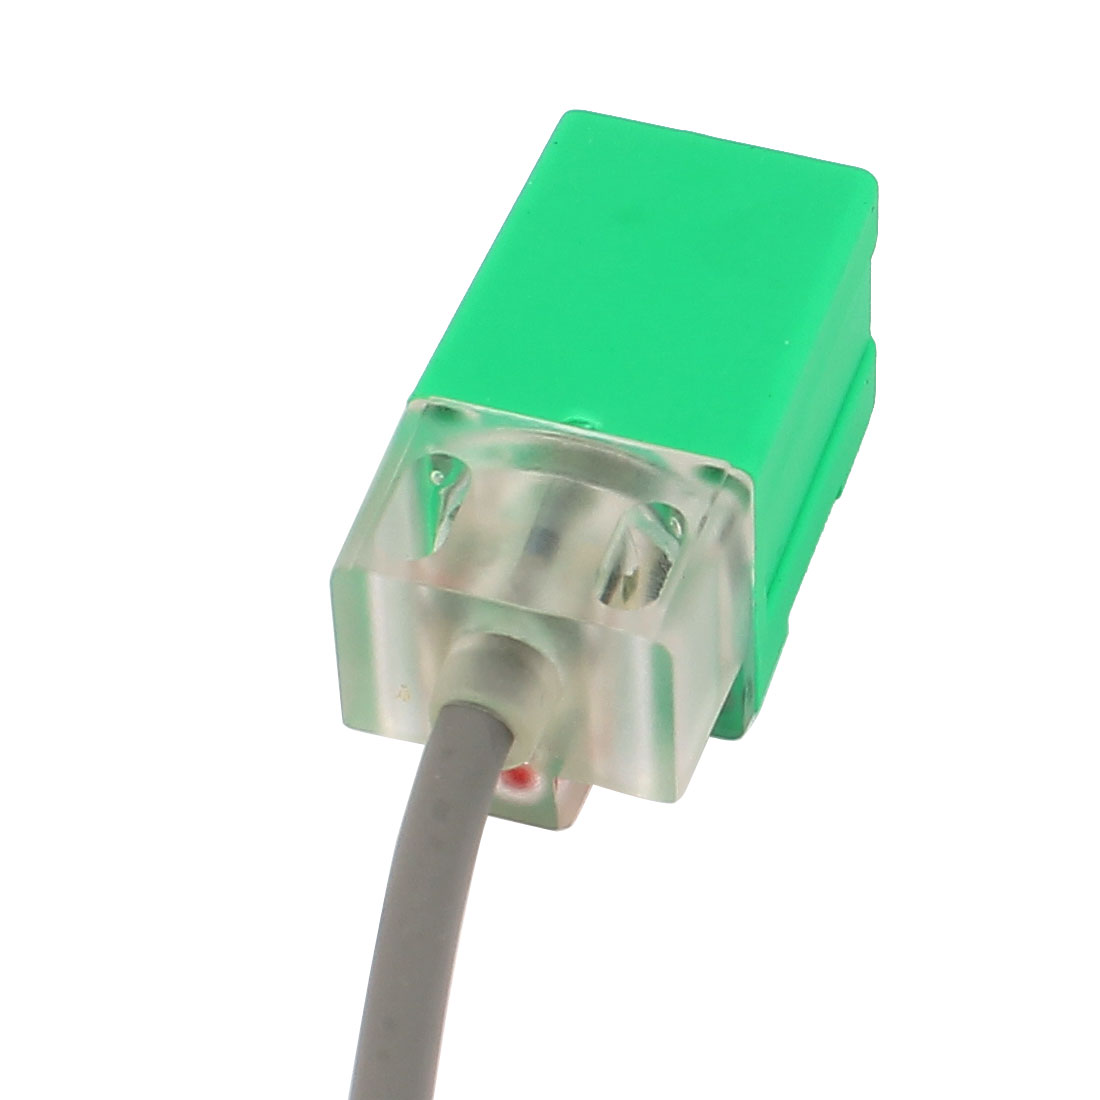 DC 102-30V 3 Wires 5mm Detection Distance Proximity Sensor Switch NPN NO PL-05P - image 2 of 4